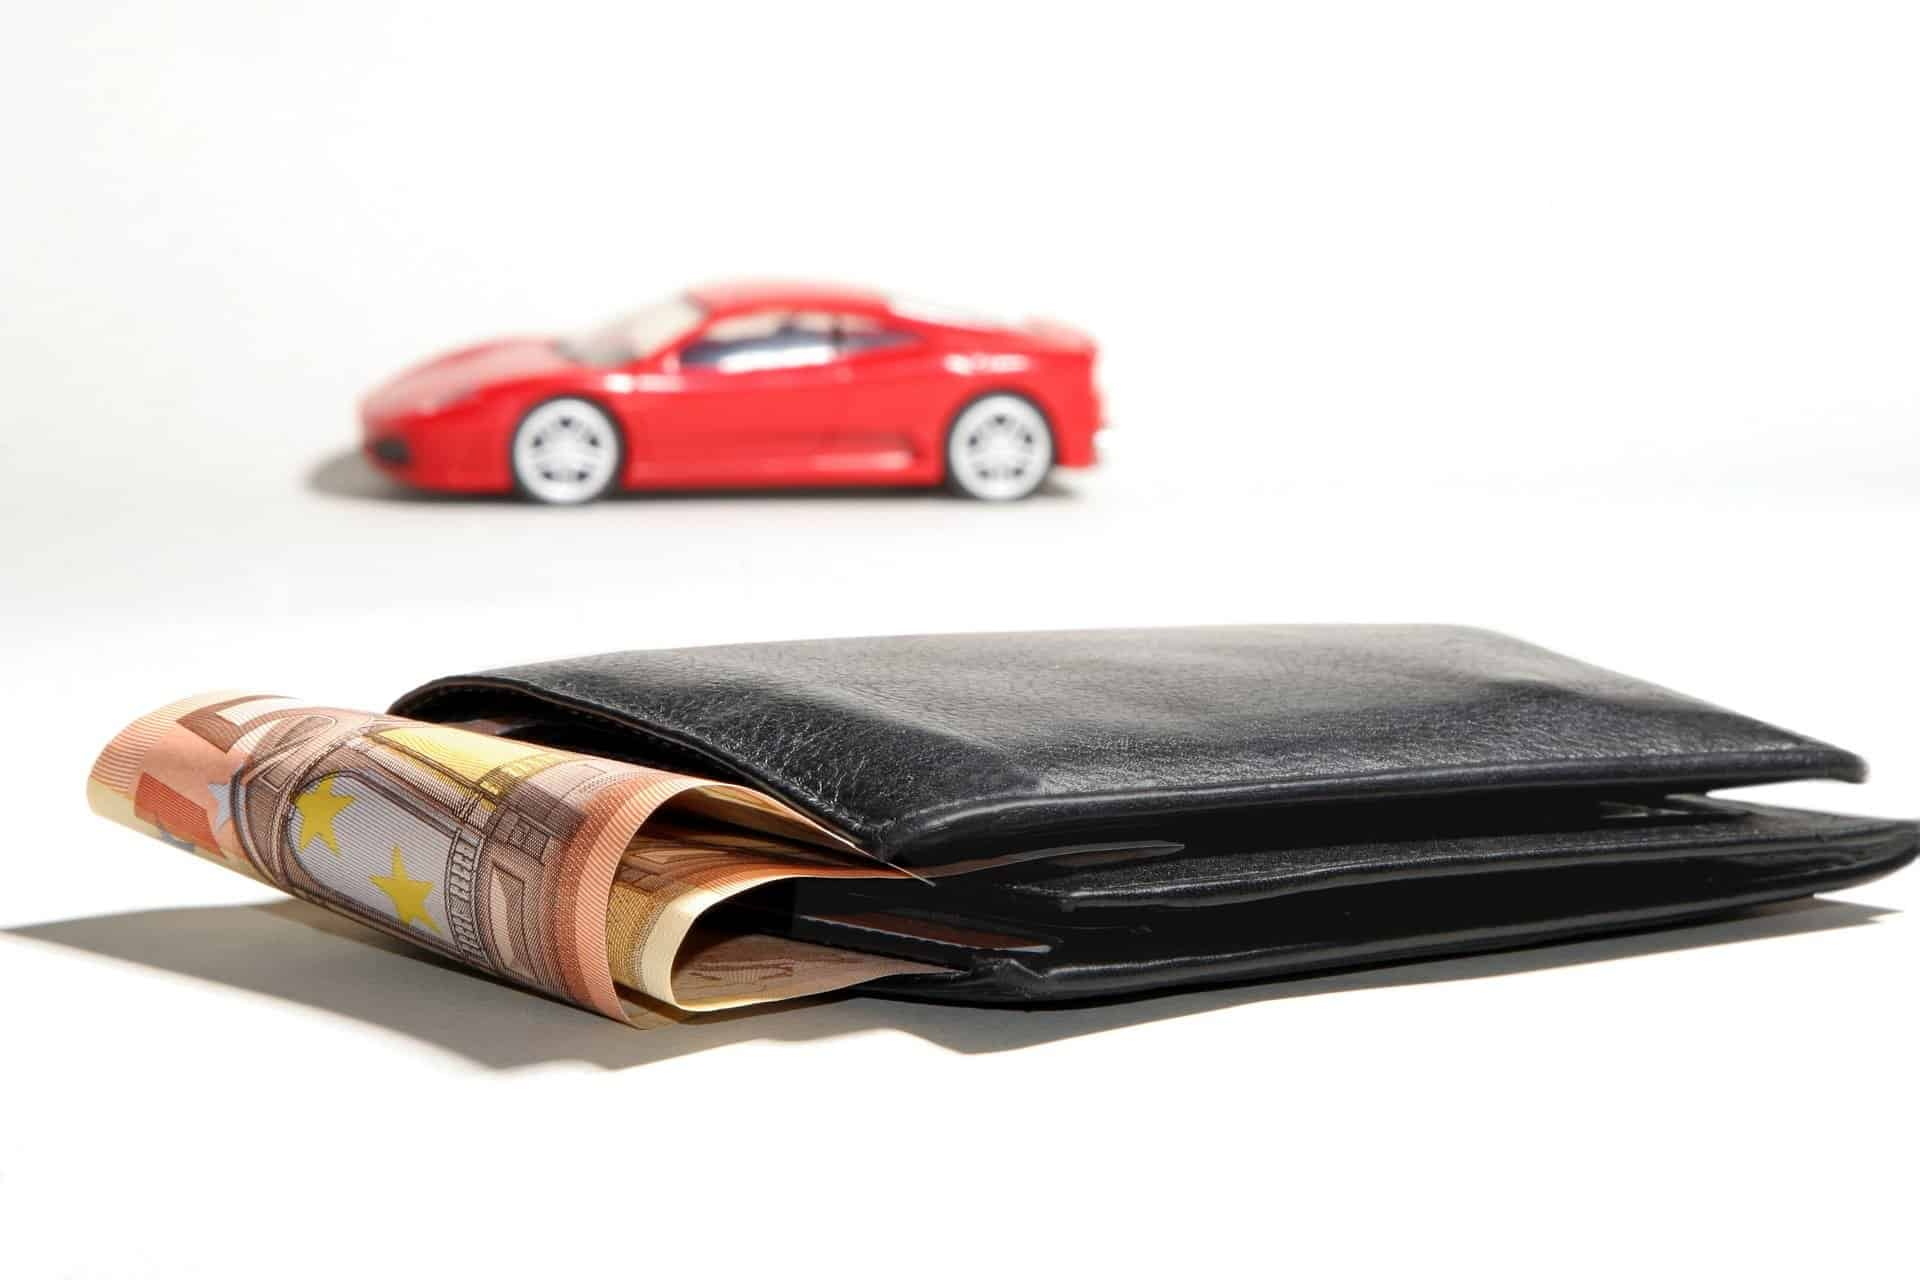 How To Find The True Value Of Your Car